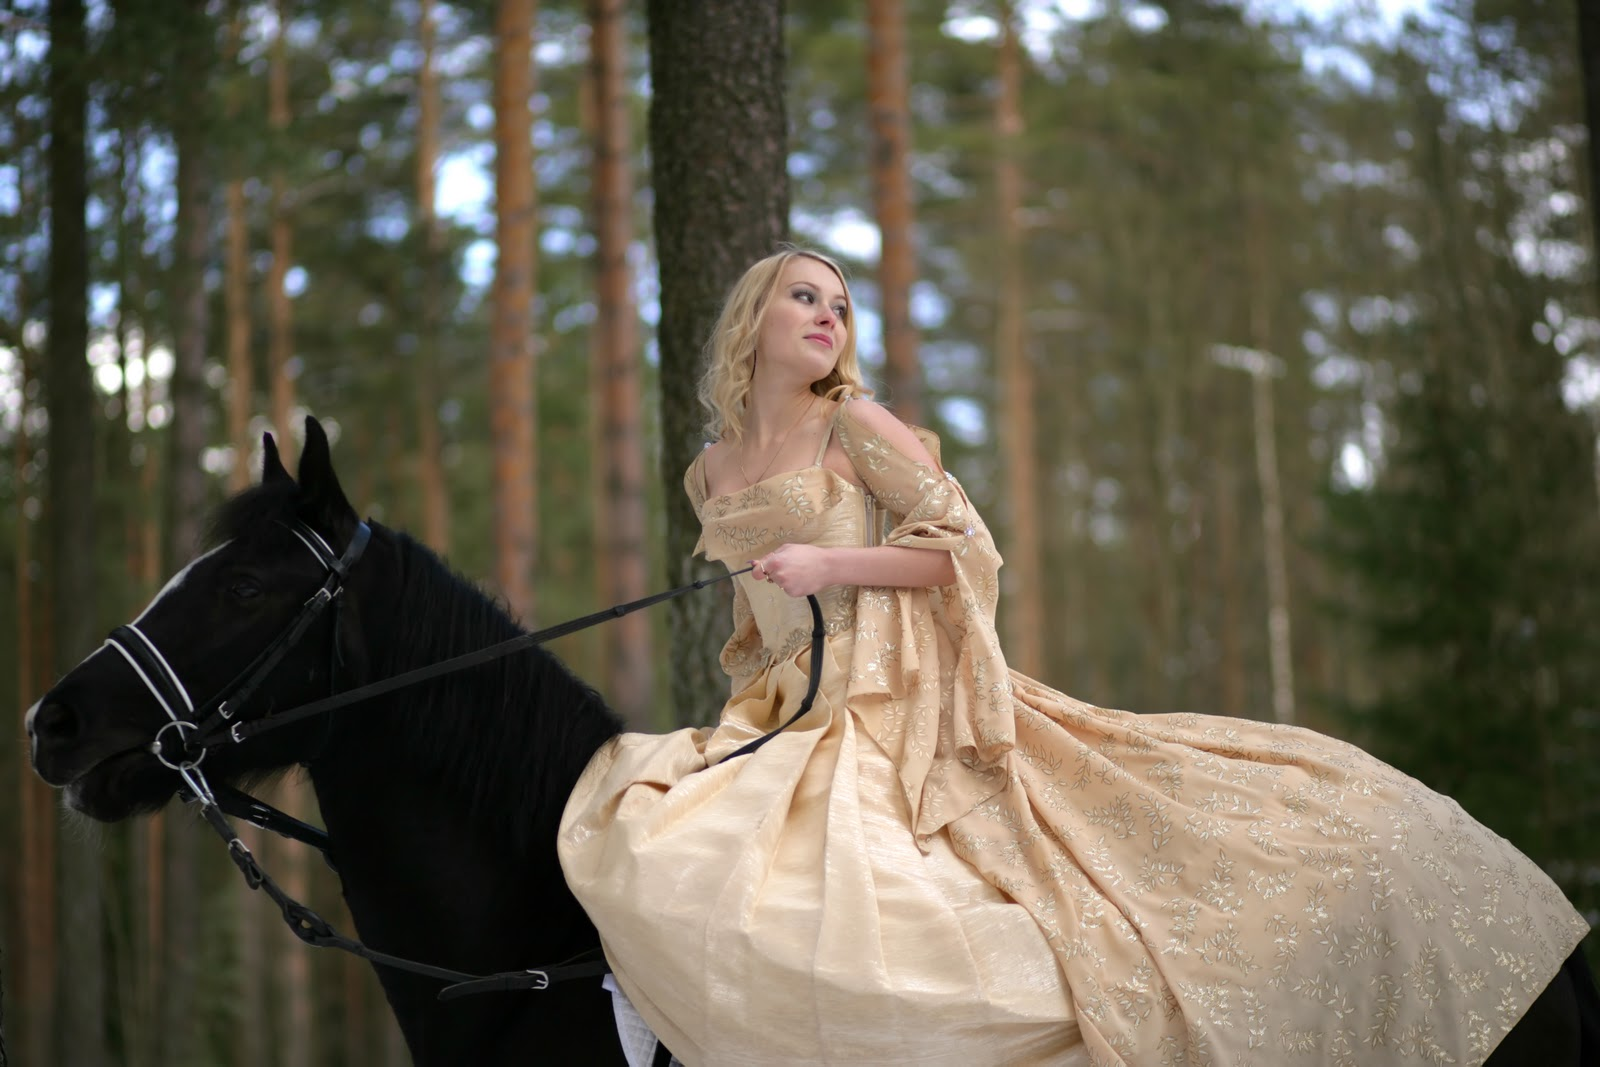 love friendship a princess on a horse